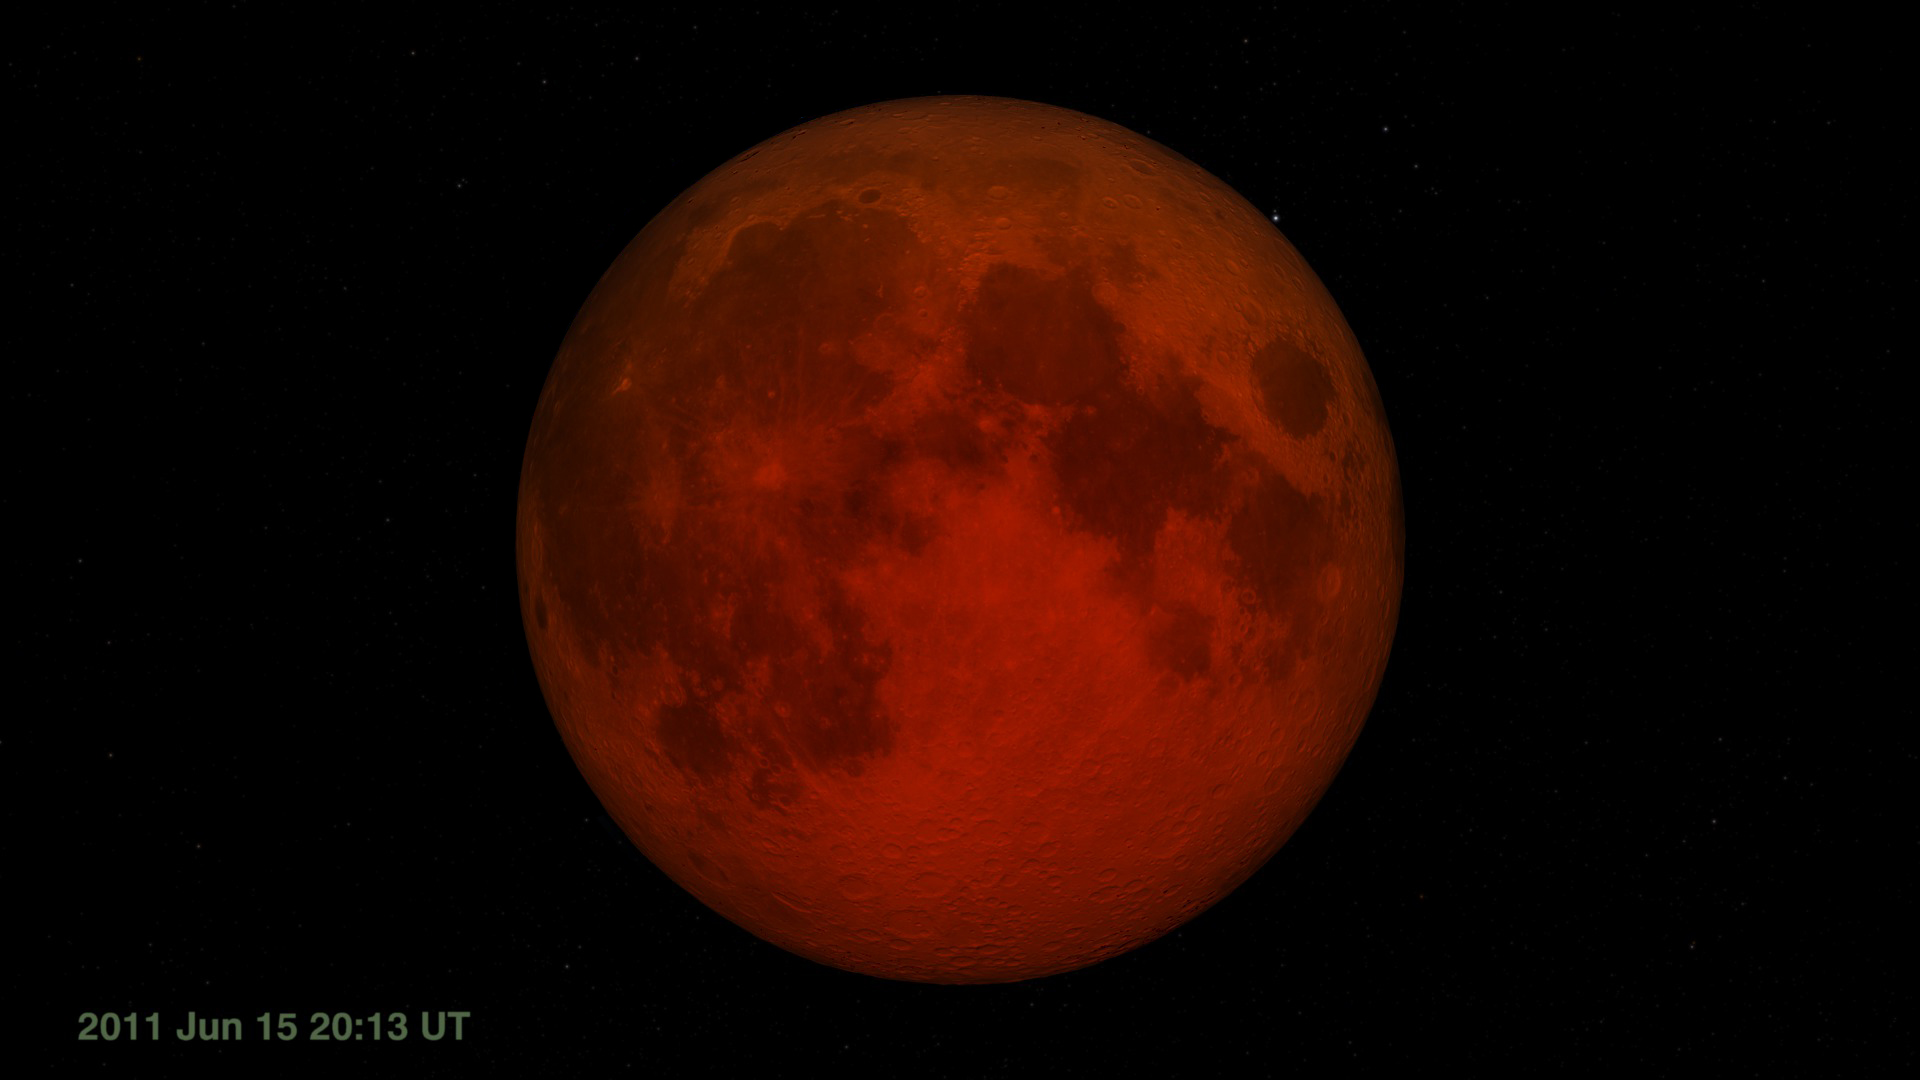 nasa live lunar eclipse - photo #8